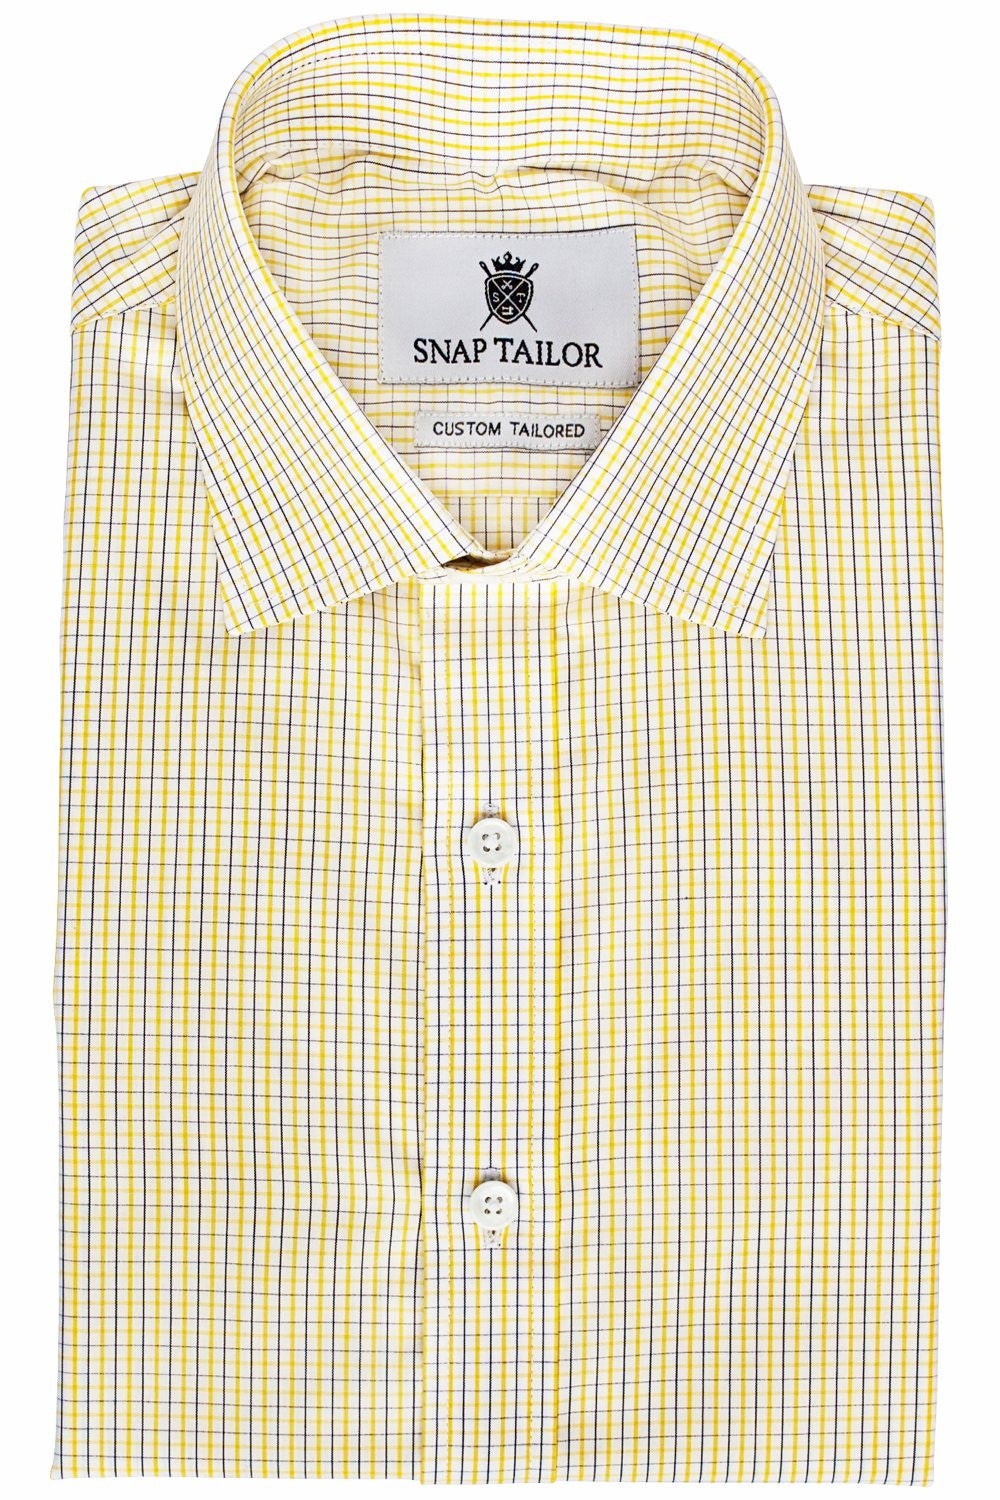 Photo of the Yellow and Black Tattersall Dress Shirt